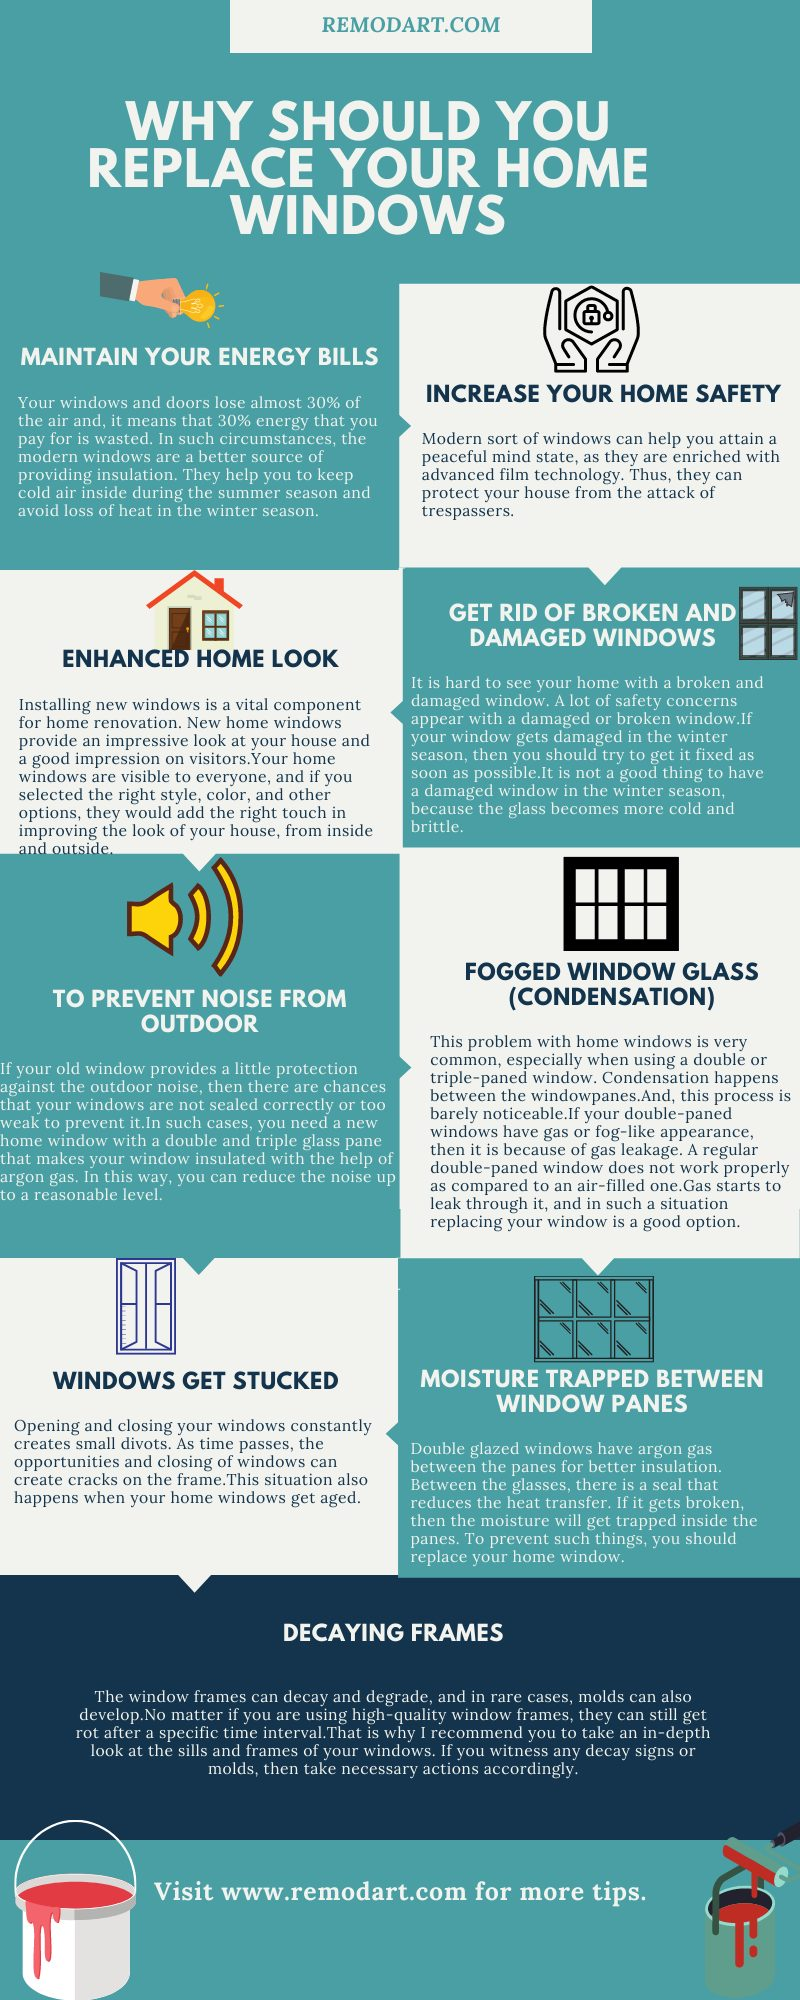 Why Should You Replace Your Home Windows